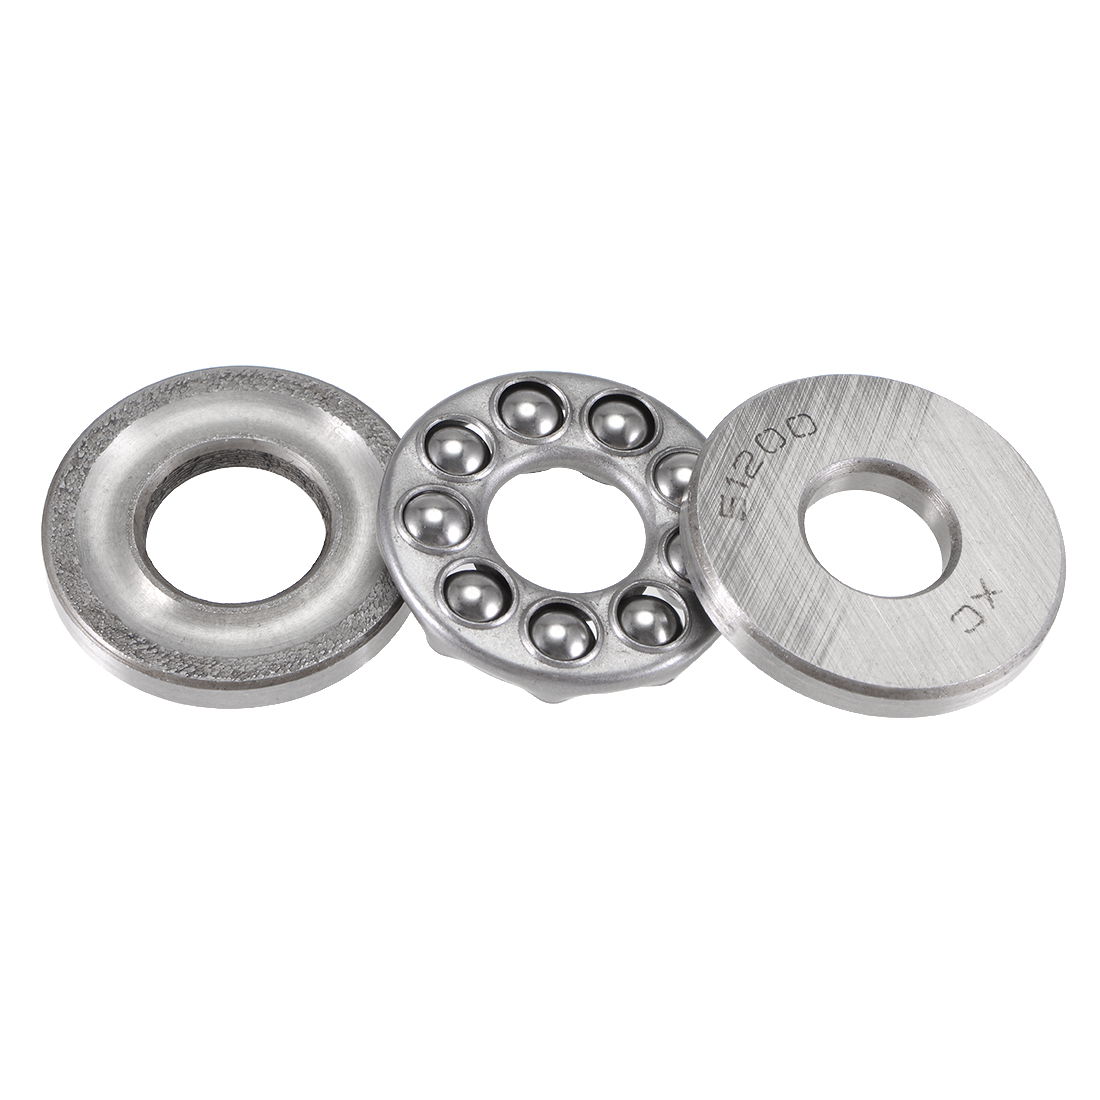 Carbon Steel Axial Thrust Bearing 10mm x 26mm x 9mm 51200